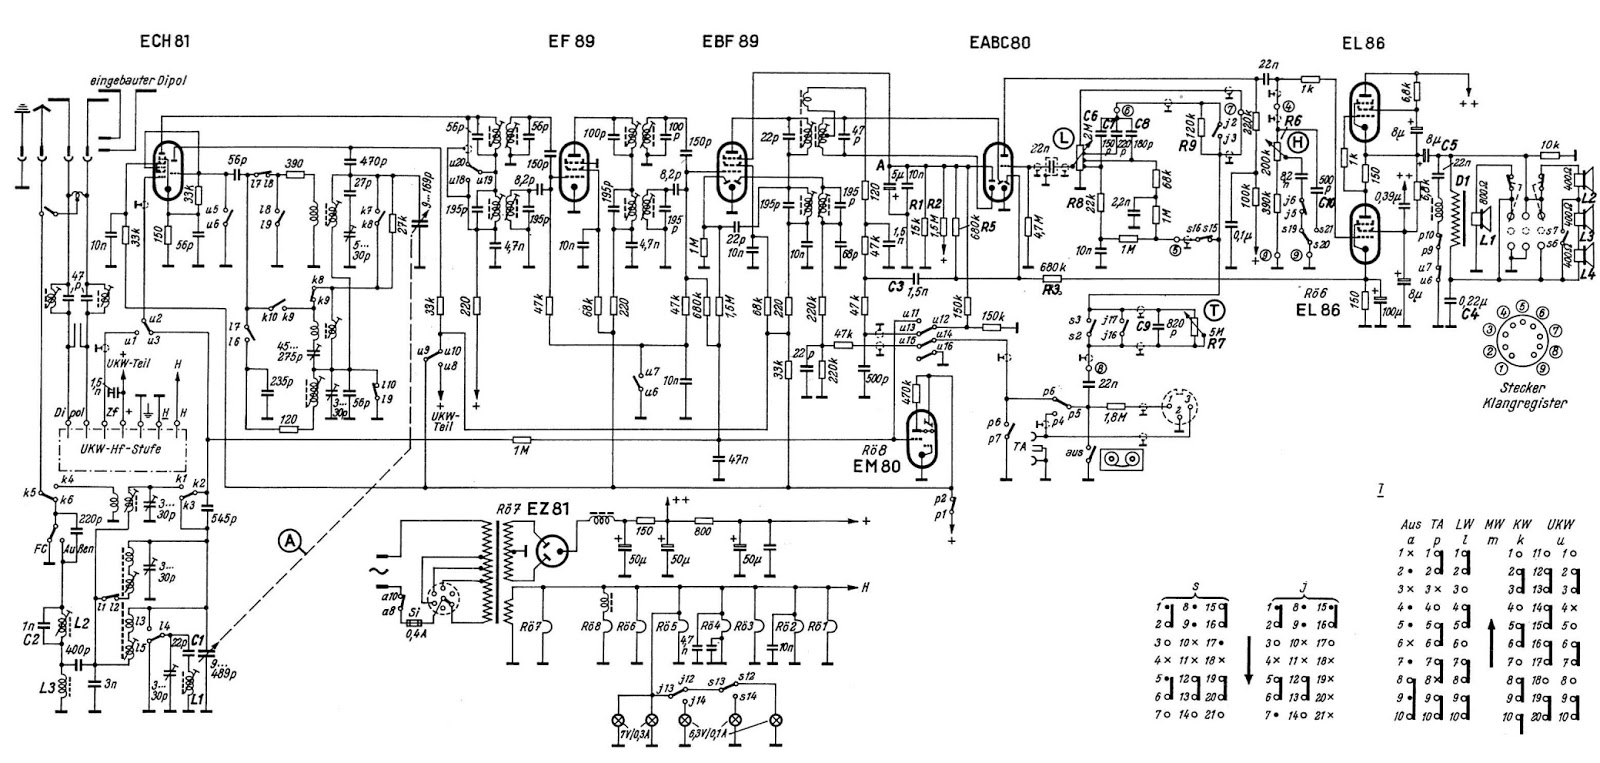 tube radio schematic diagram simple wiring schema whirlpool refrigerator schematic diagram manguonblog philips saturn 563 vacuum [ 1600 x 763 Pixel ]